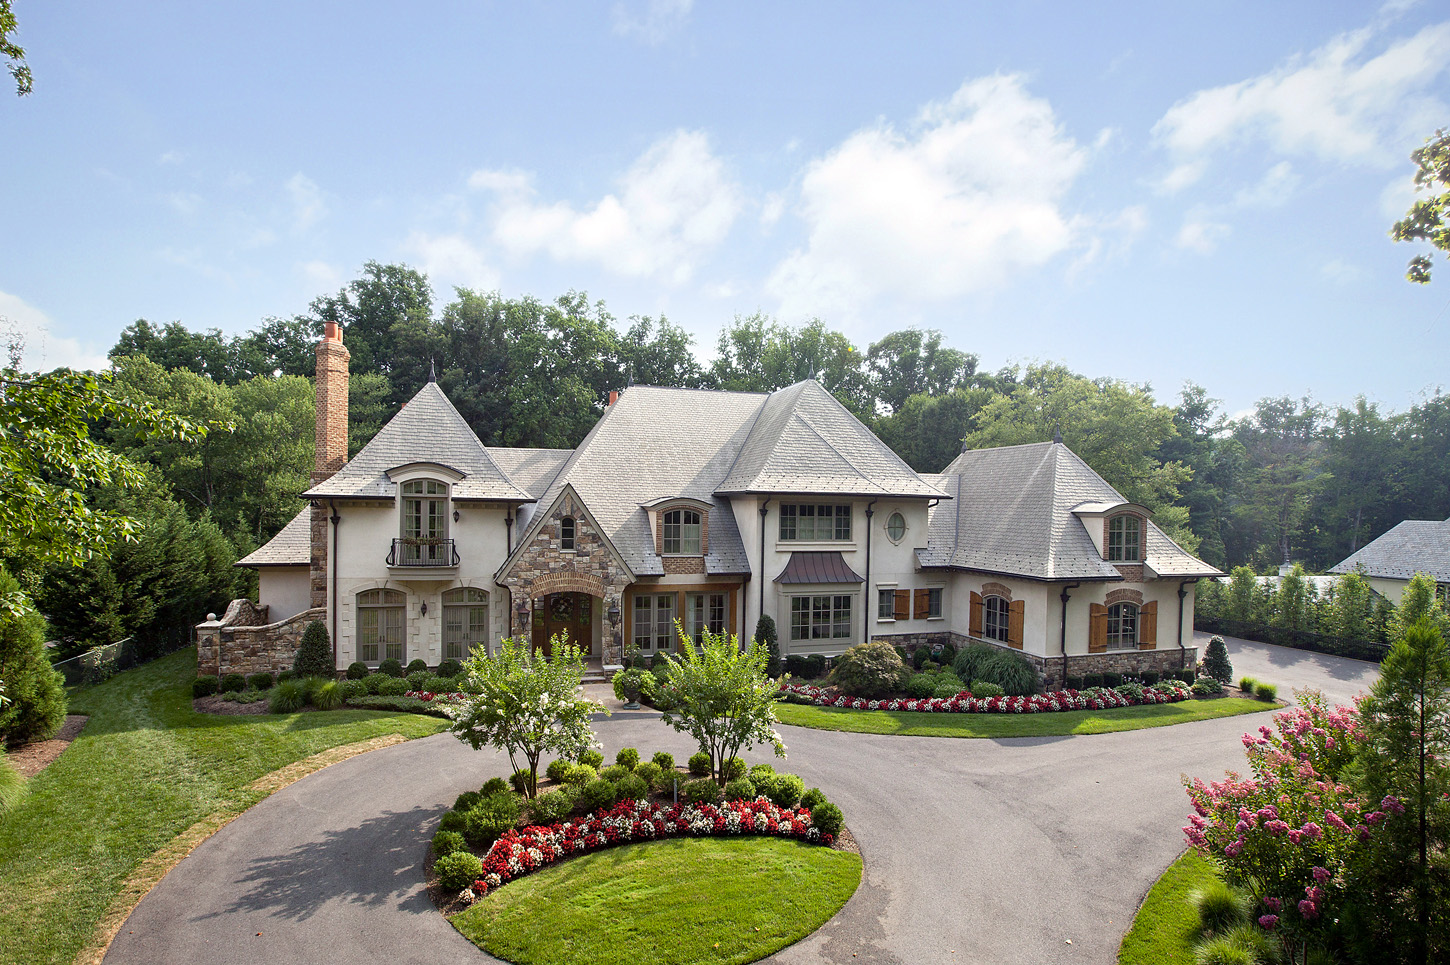 Mansions Floor Plan With Pictures Homevisit Virtual Tour 7224 Arrowood Rd Bethesda Md 20817